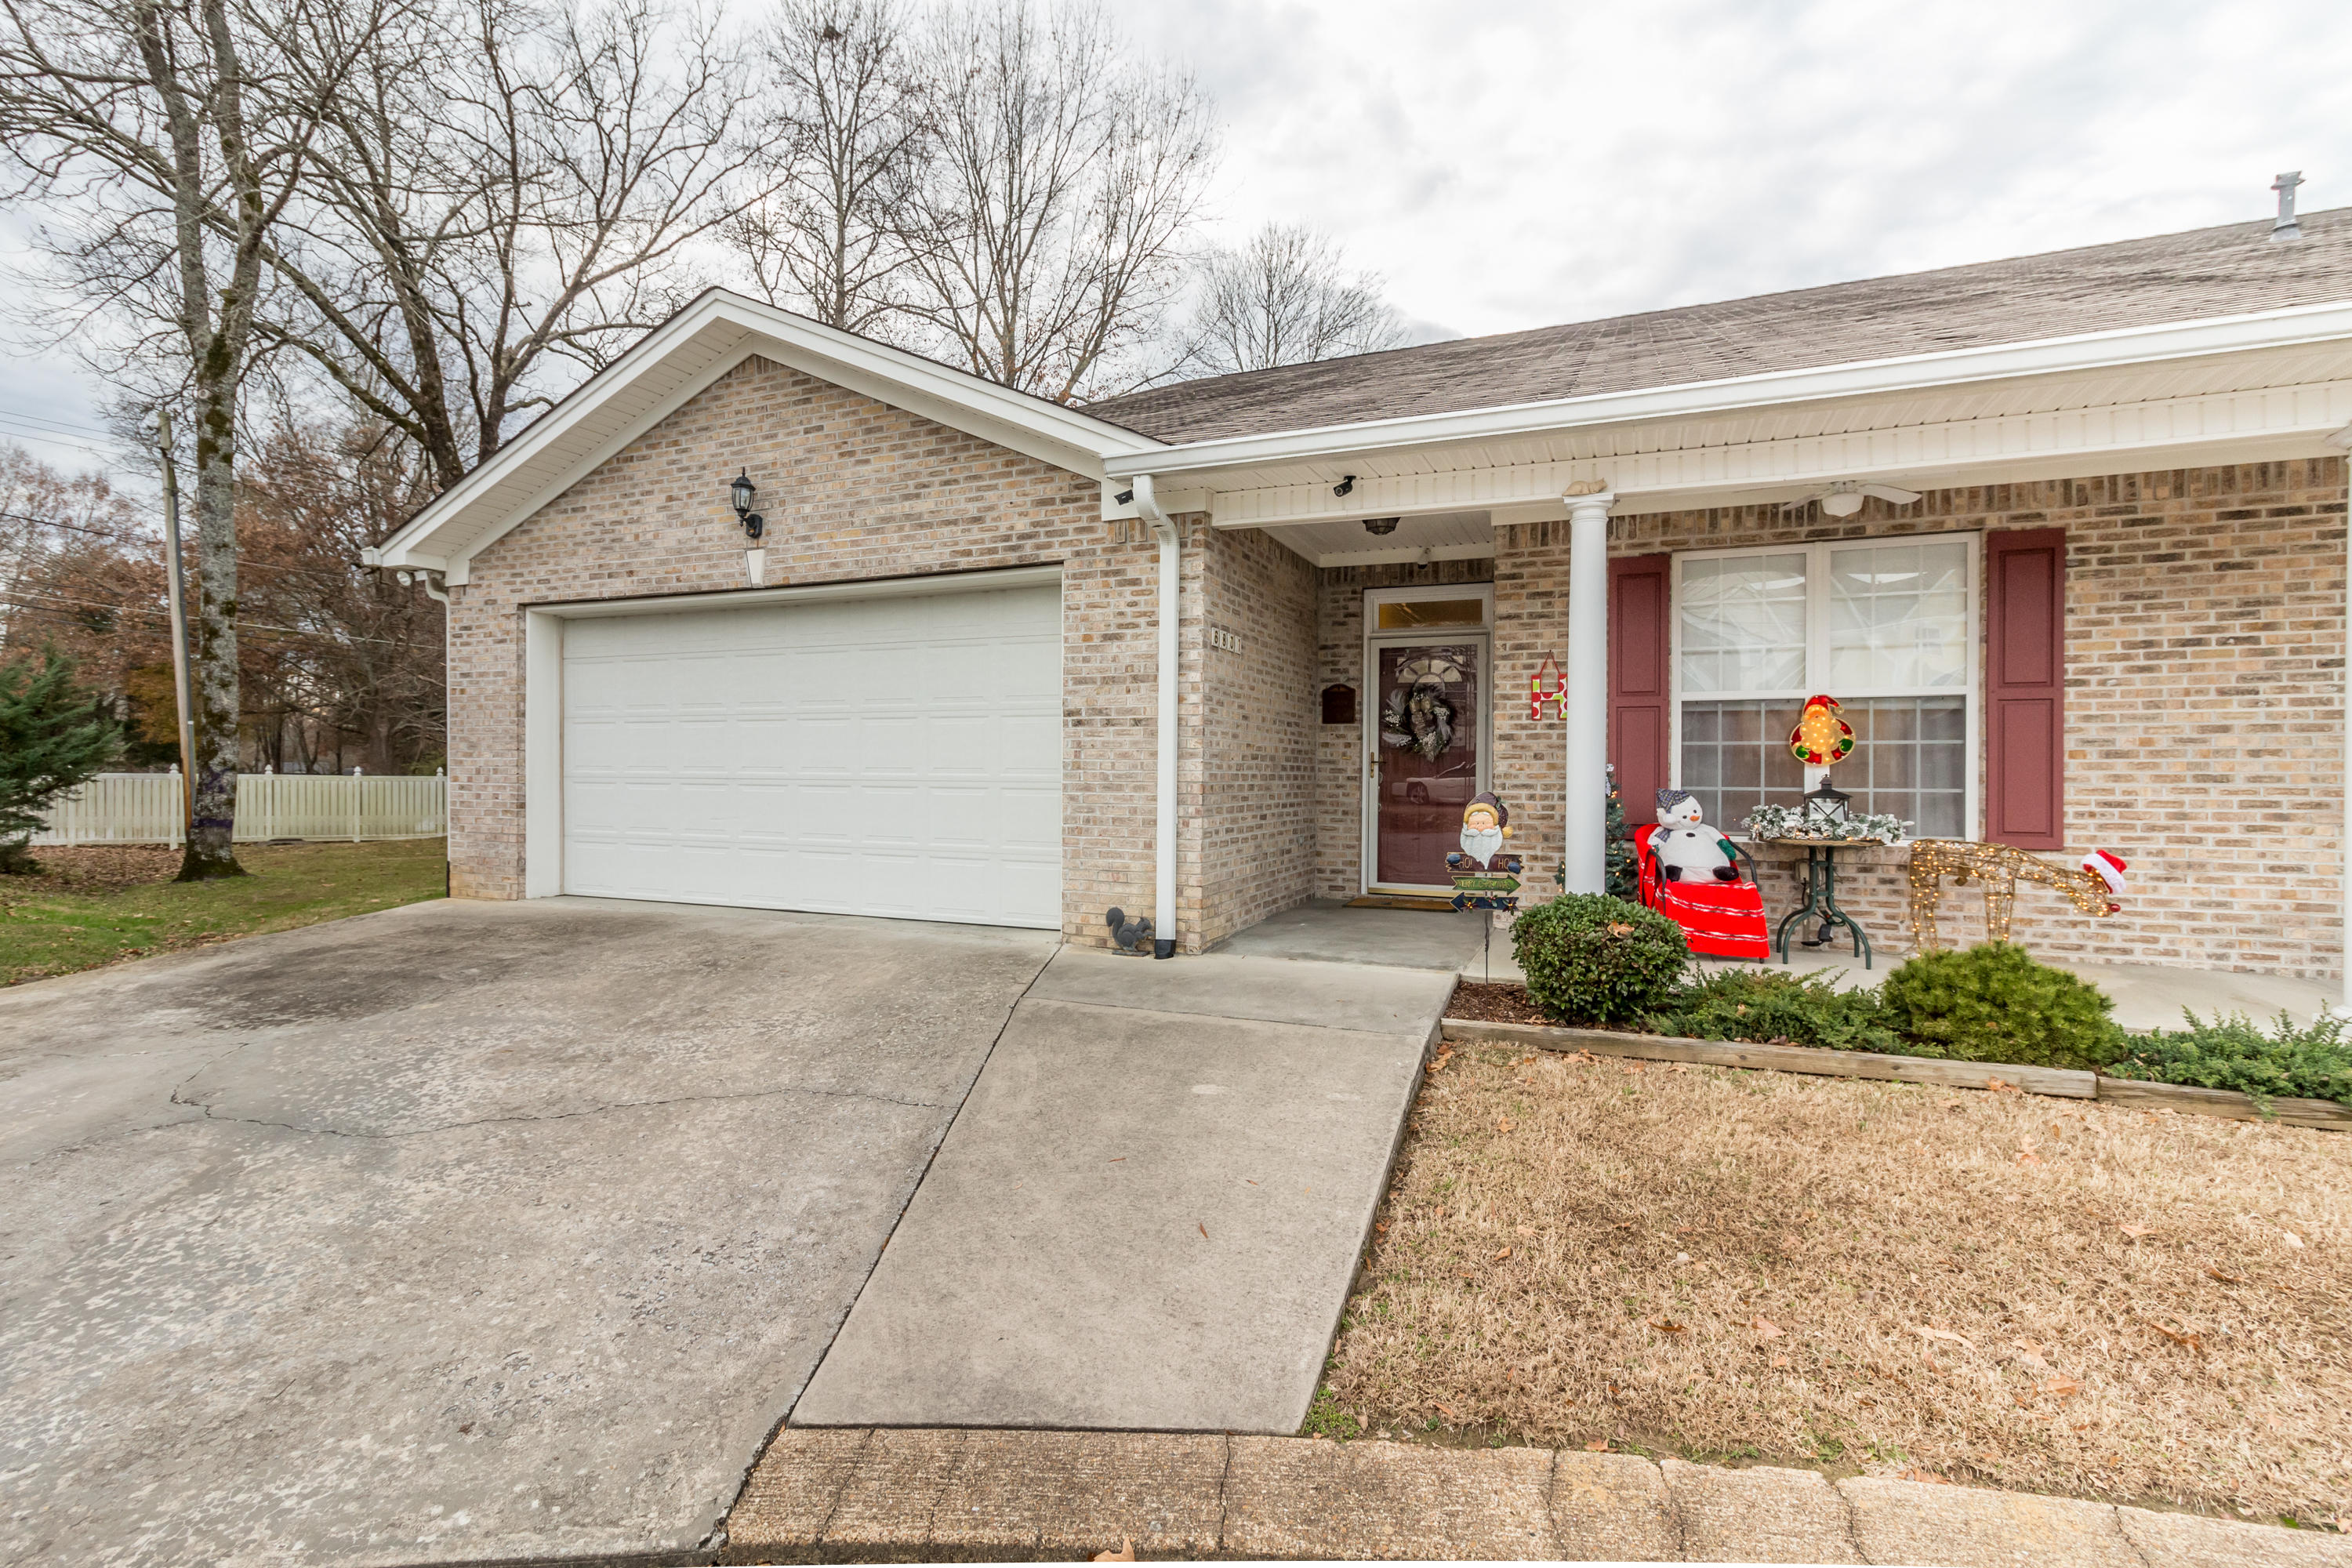 6801 French Quarter Ct, Hixson, TN 37343